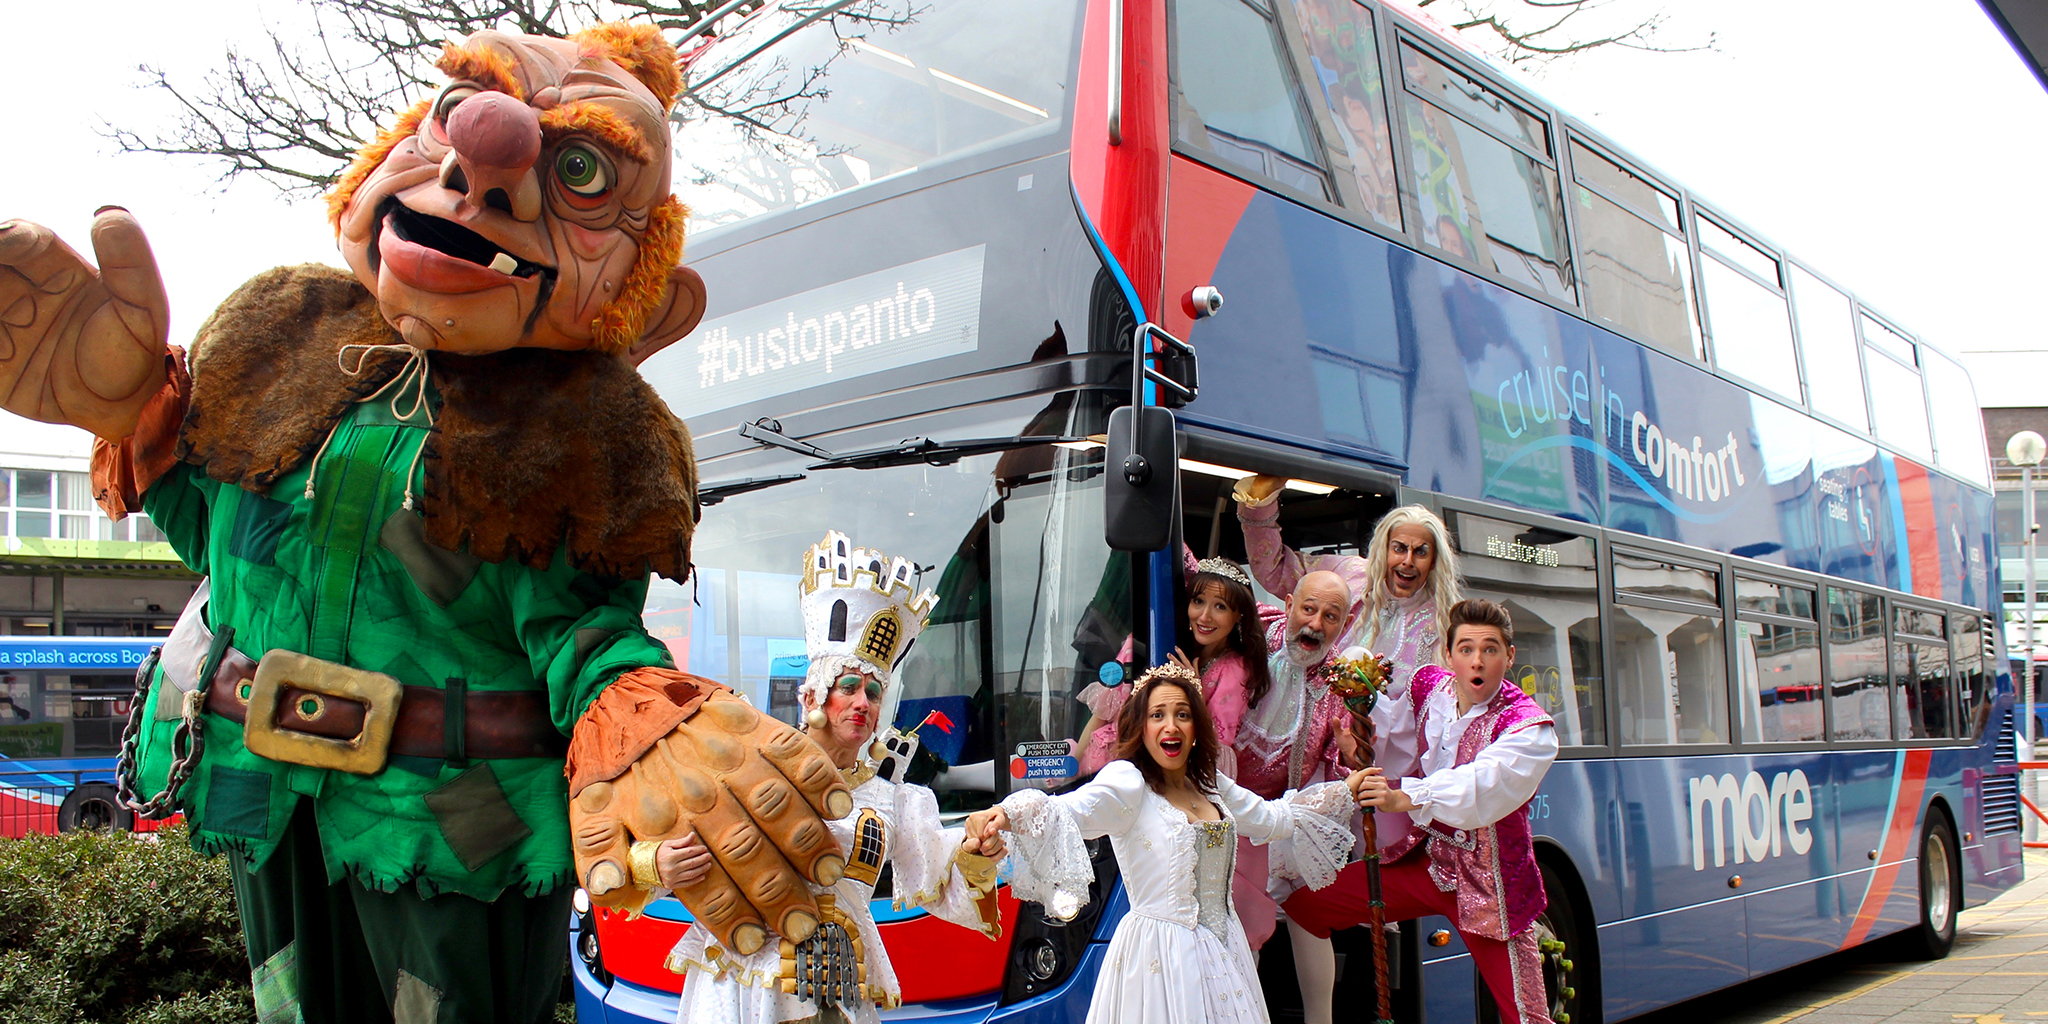 Photo of the cast of Jack and the Beanstalk cast in front of a morebus vehicle